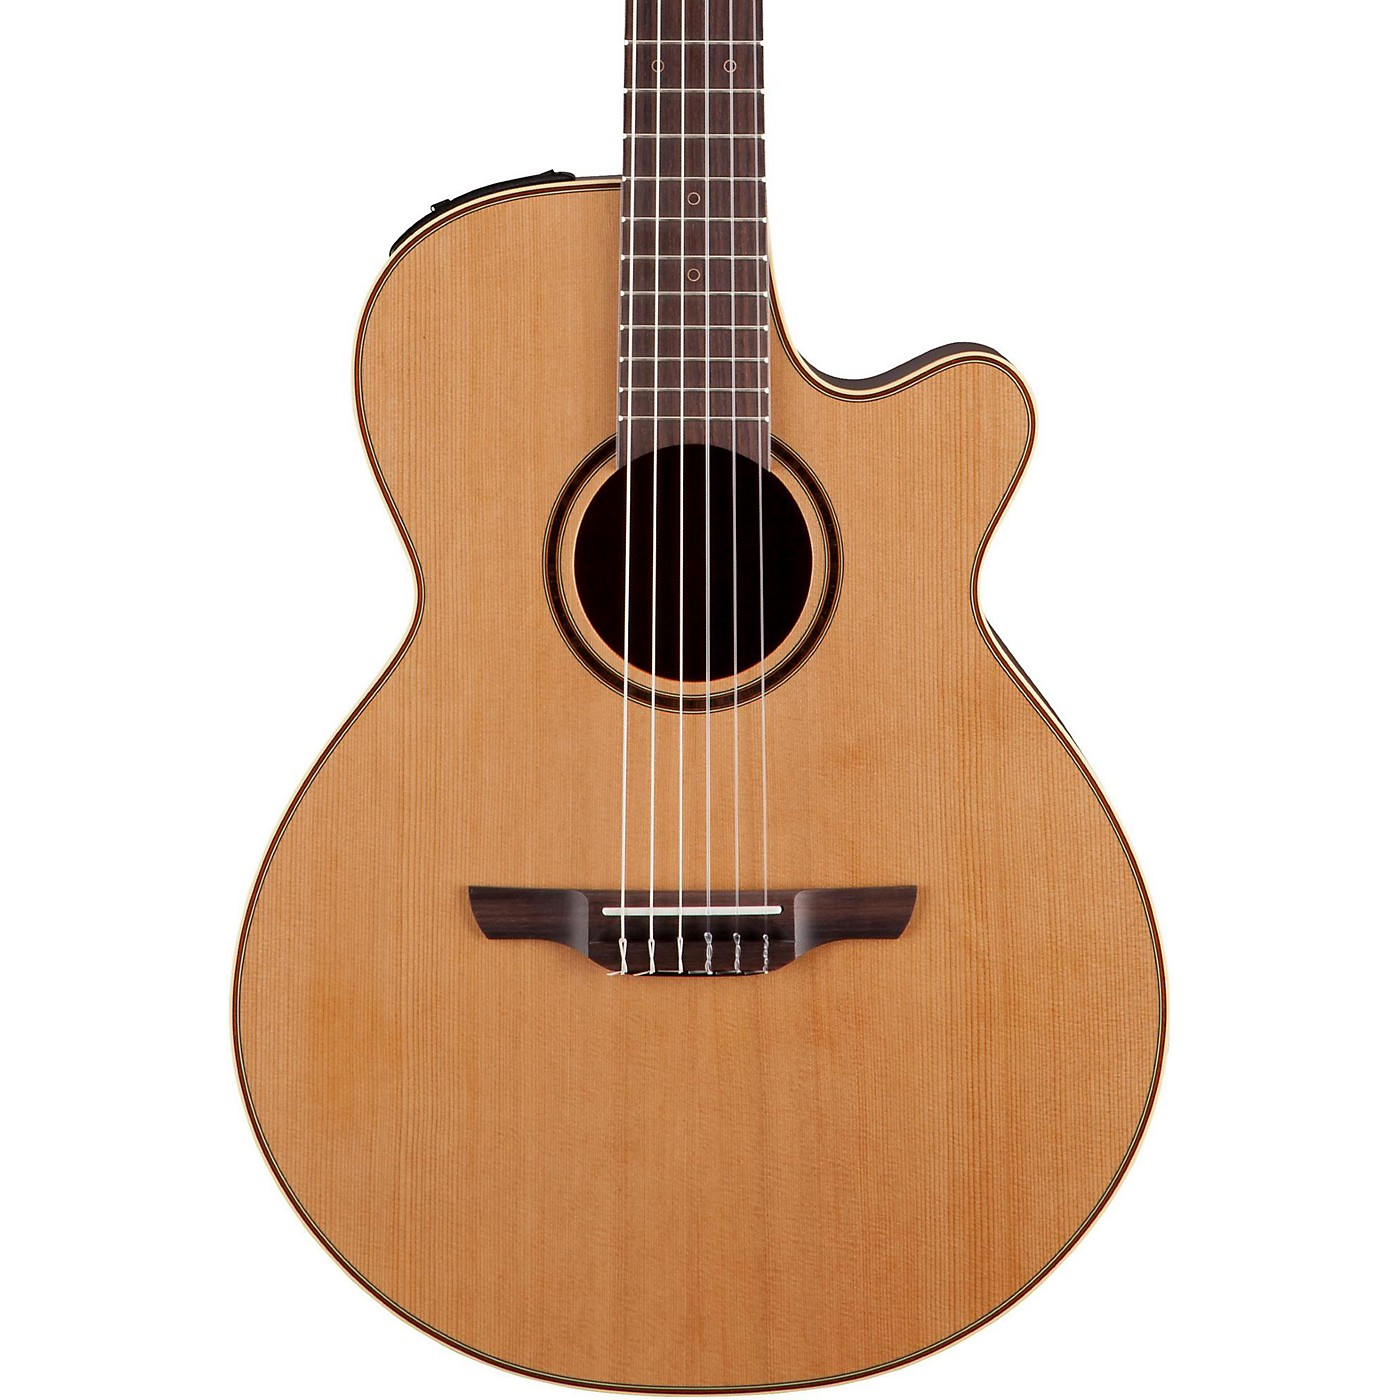 Takamine Pro Series 3 Folk Nylon Cutaway Acoustic-Electric Guitar thumbnail